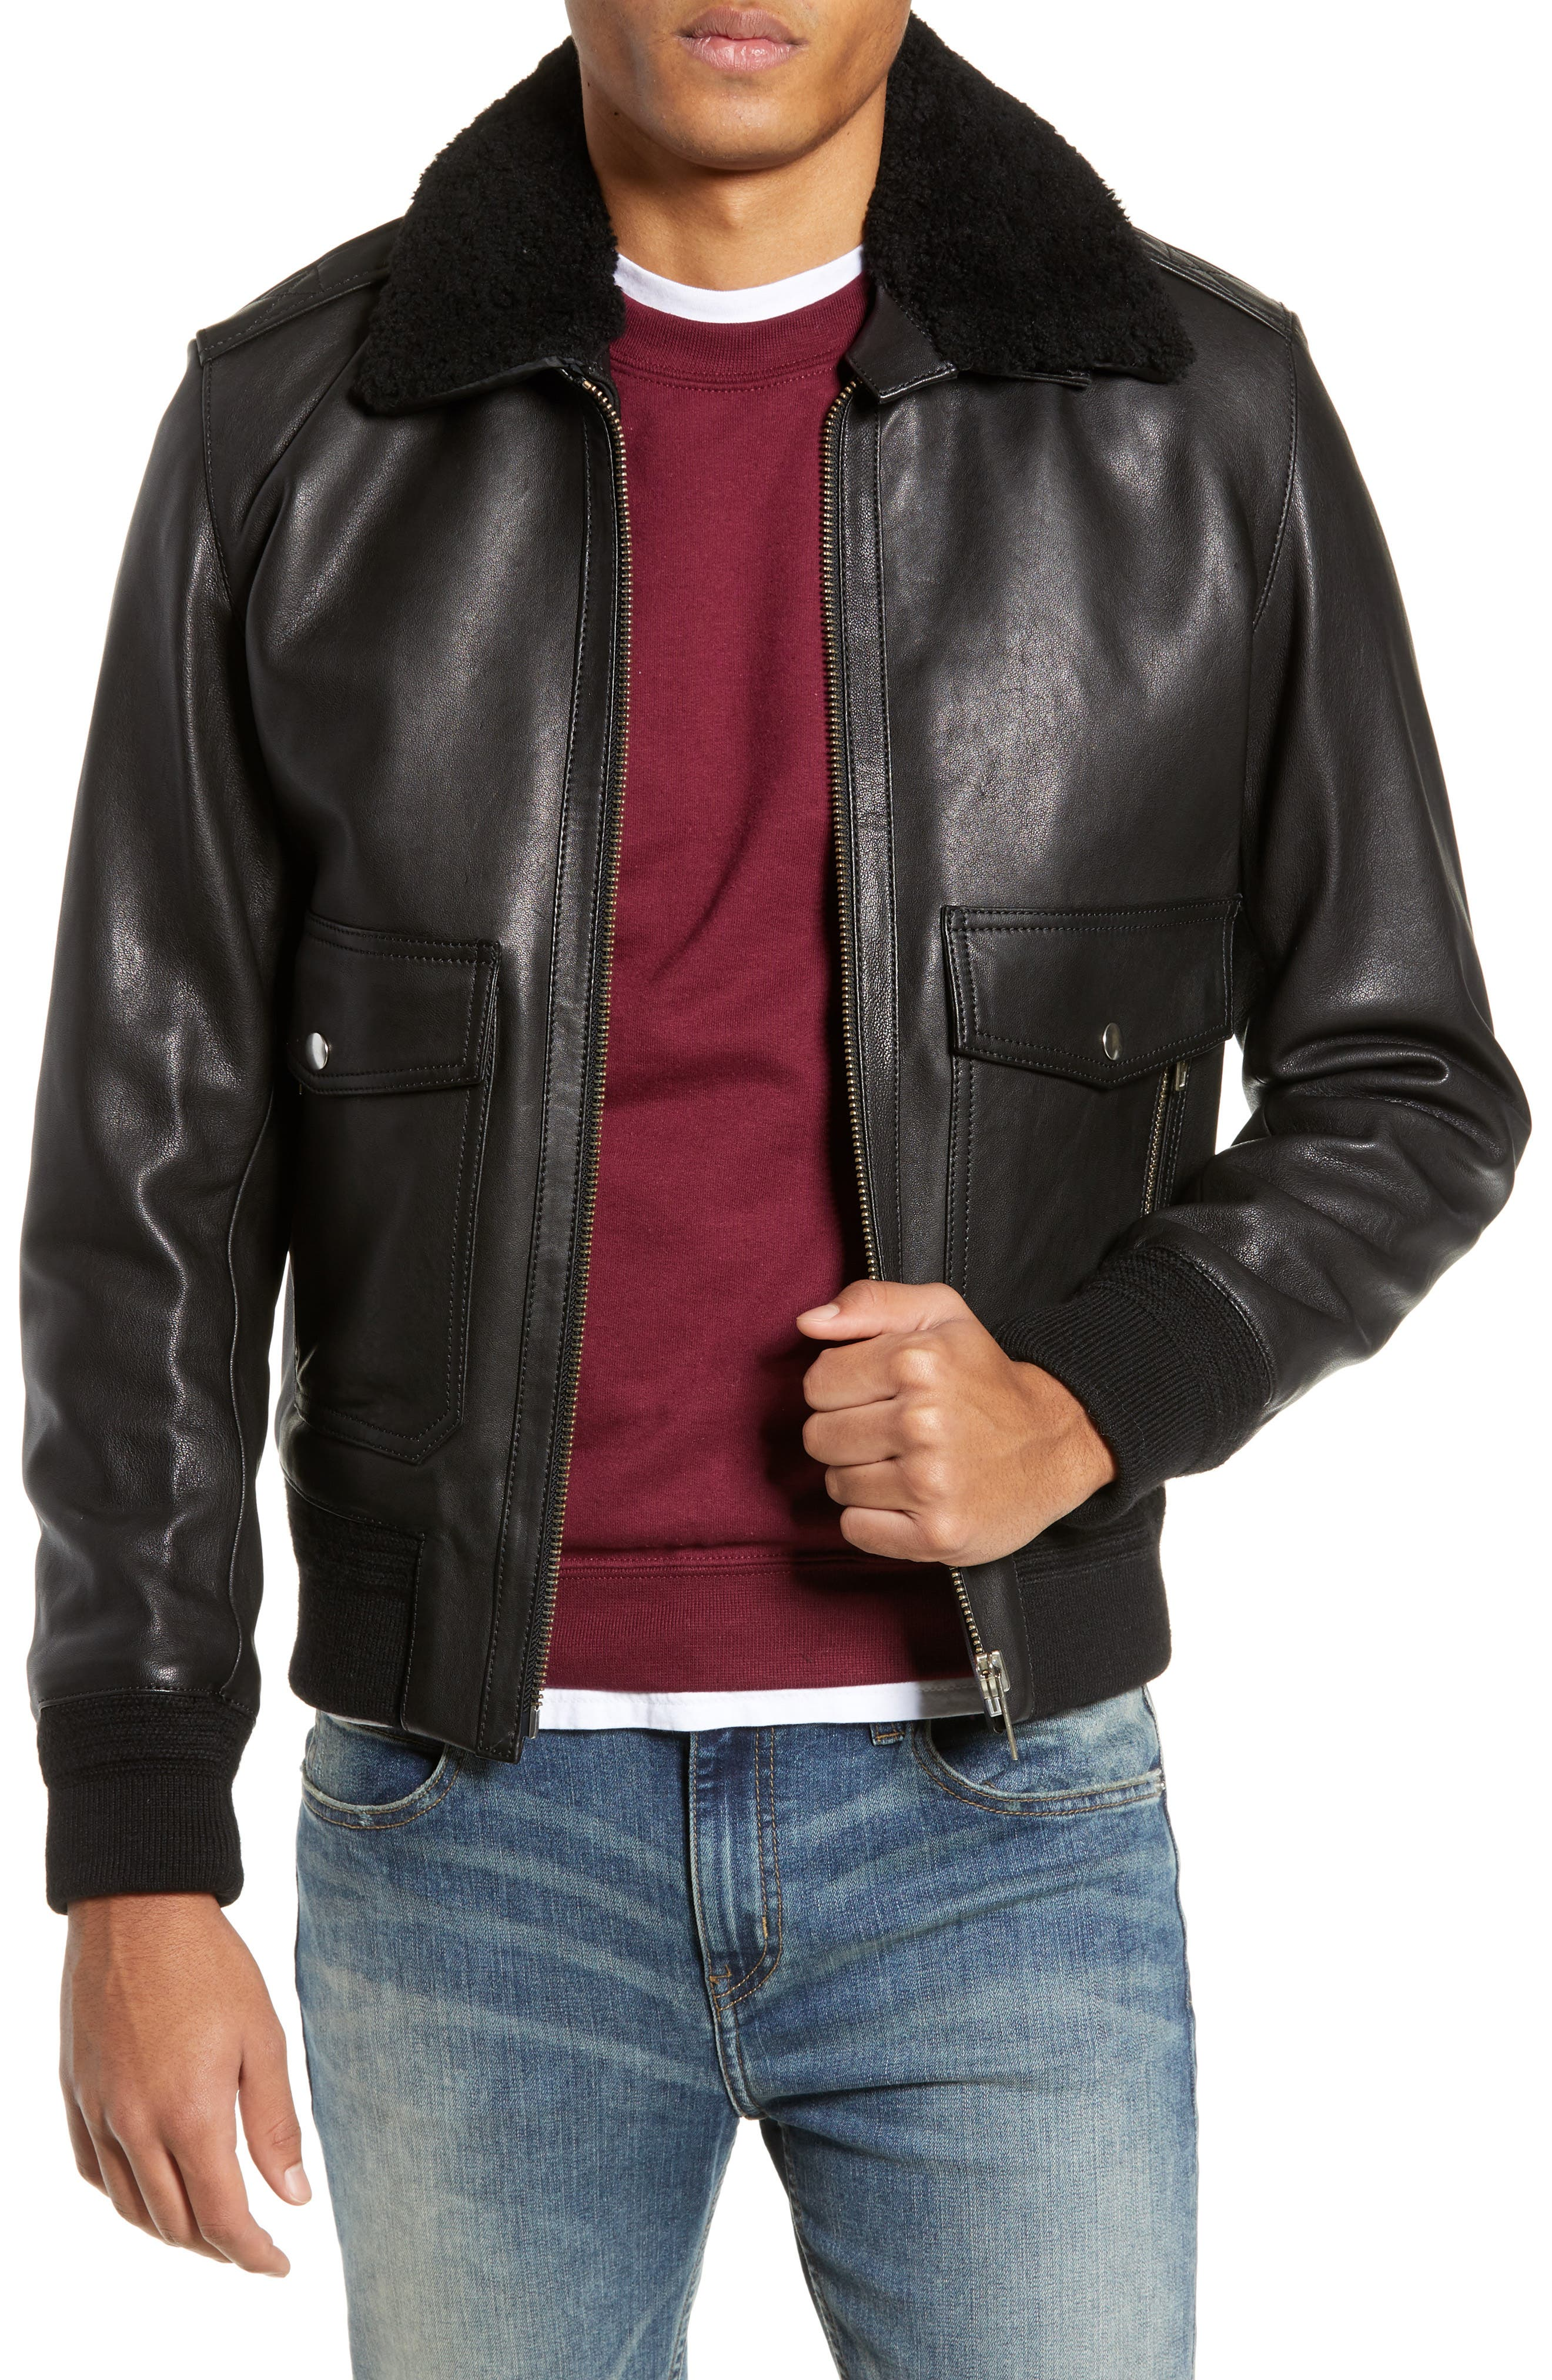 THE KOOPLES Teddy Leather Jacket with Removable Genuine Lamb Shearling Trim, Main, color, 001